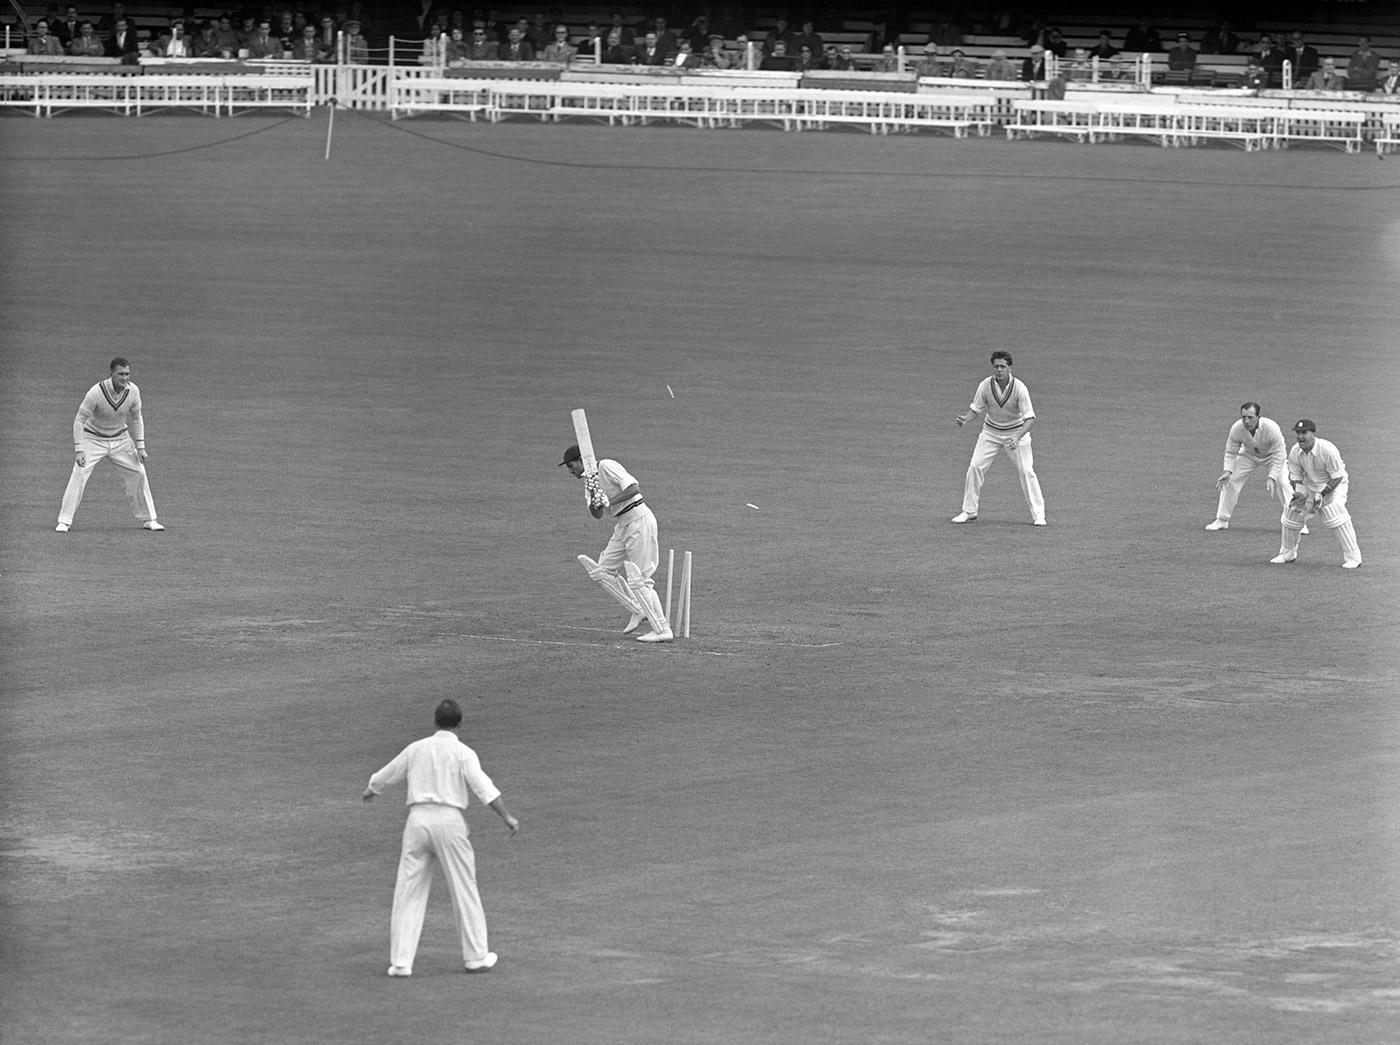 Pakistan's were 87 all out at Lord's in 1954 - Khan Mohammad is bowled by Brian Statham here -but they scrapped for more than 80 overs